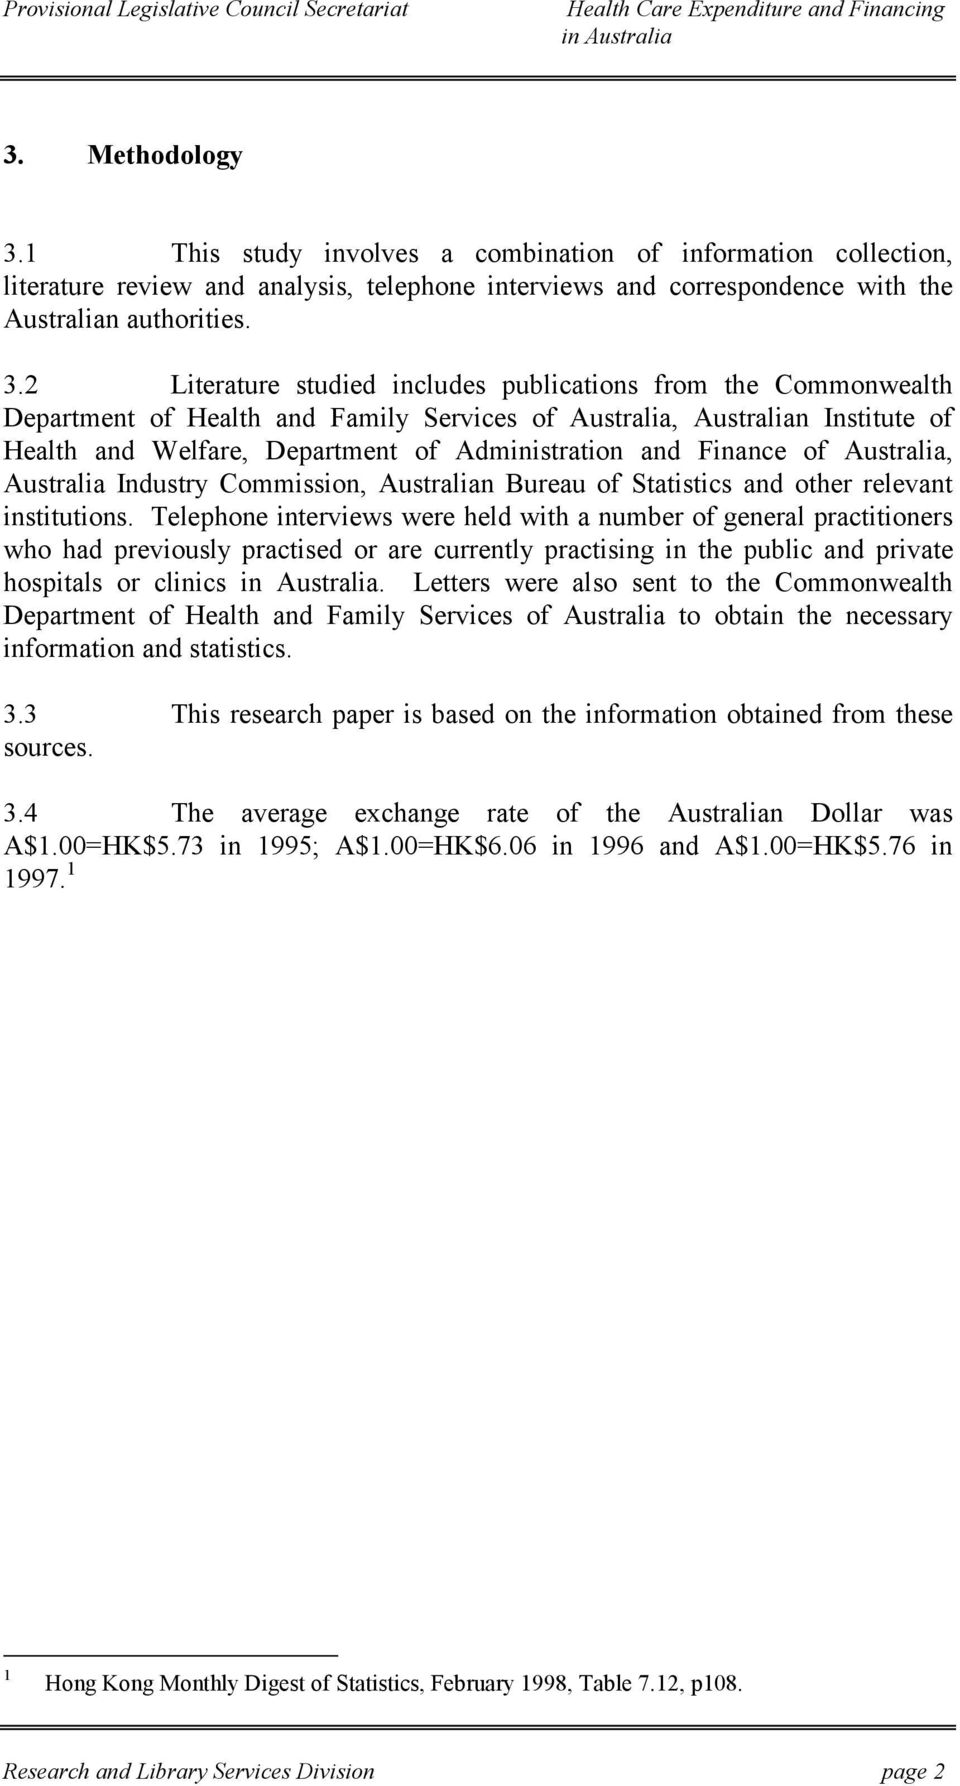 2 Literature studied includes publications from the Commonwealth Department of Health and Family Services of Australia, Australian Institute of Health and Welfare, Department of Administration and